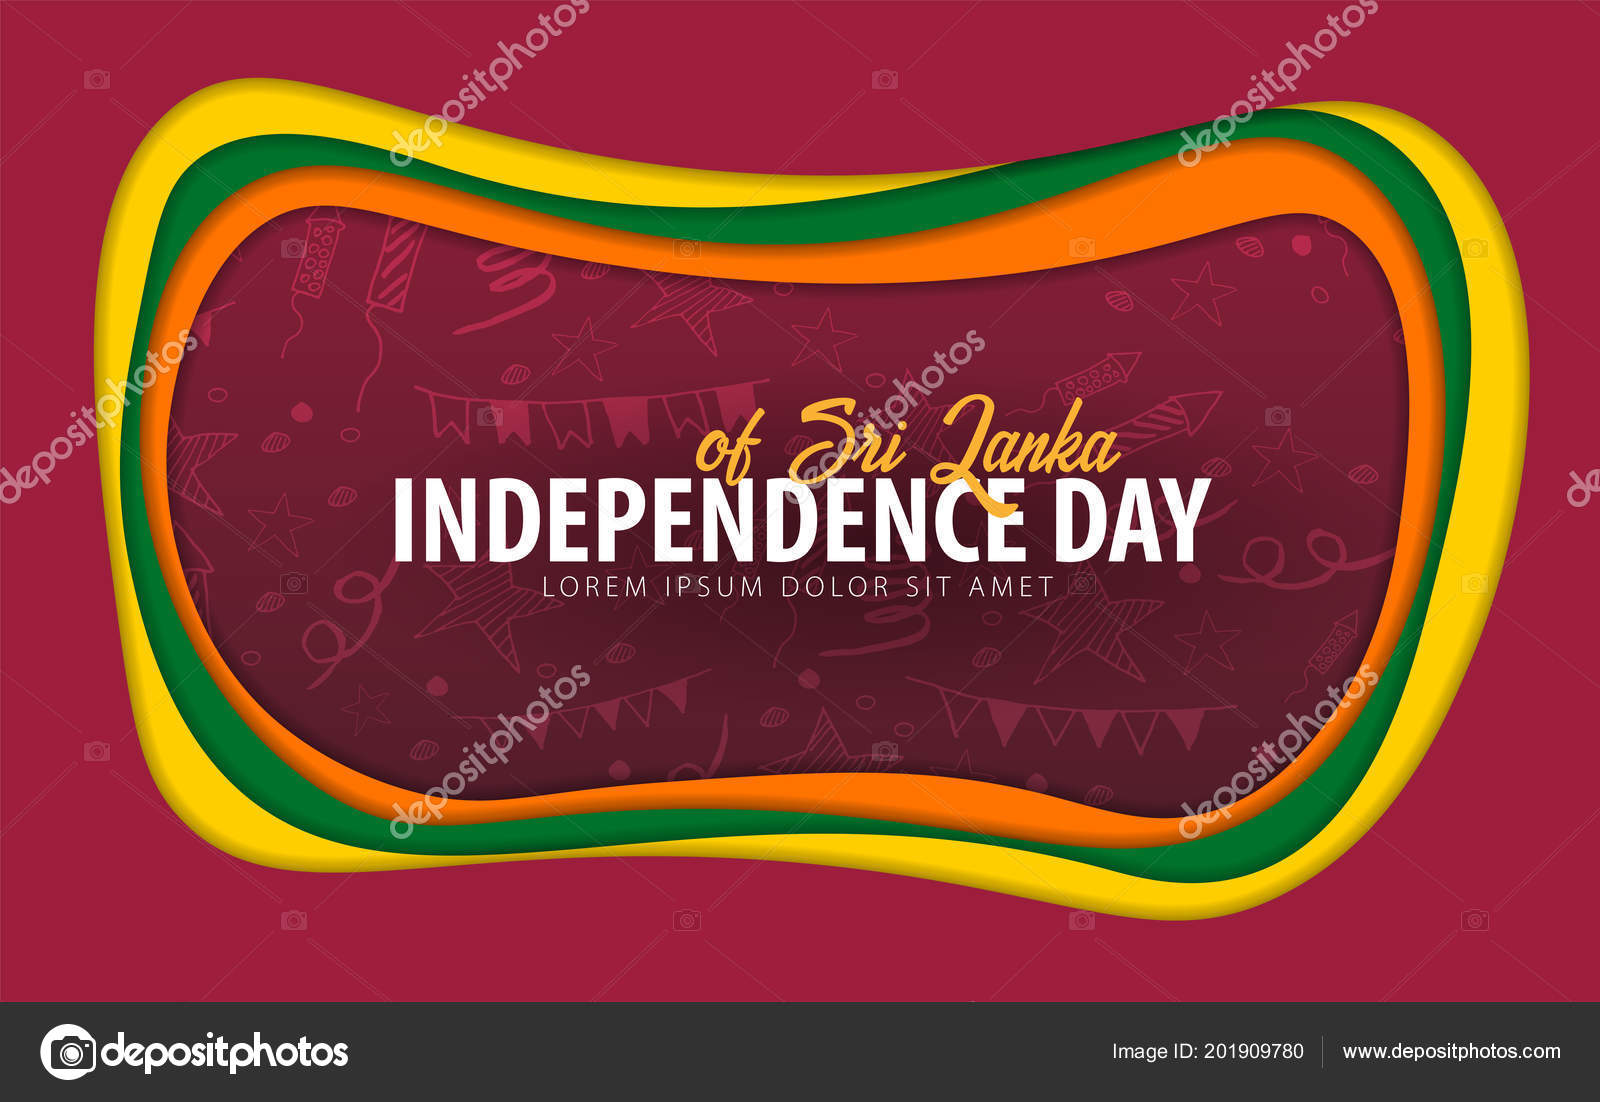 Sri Lanka Independence Day Greeting Card Paper Cut Style